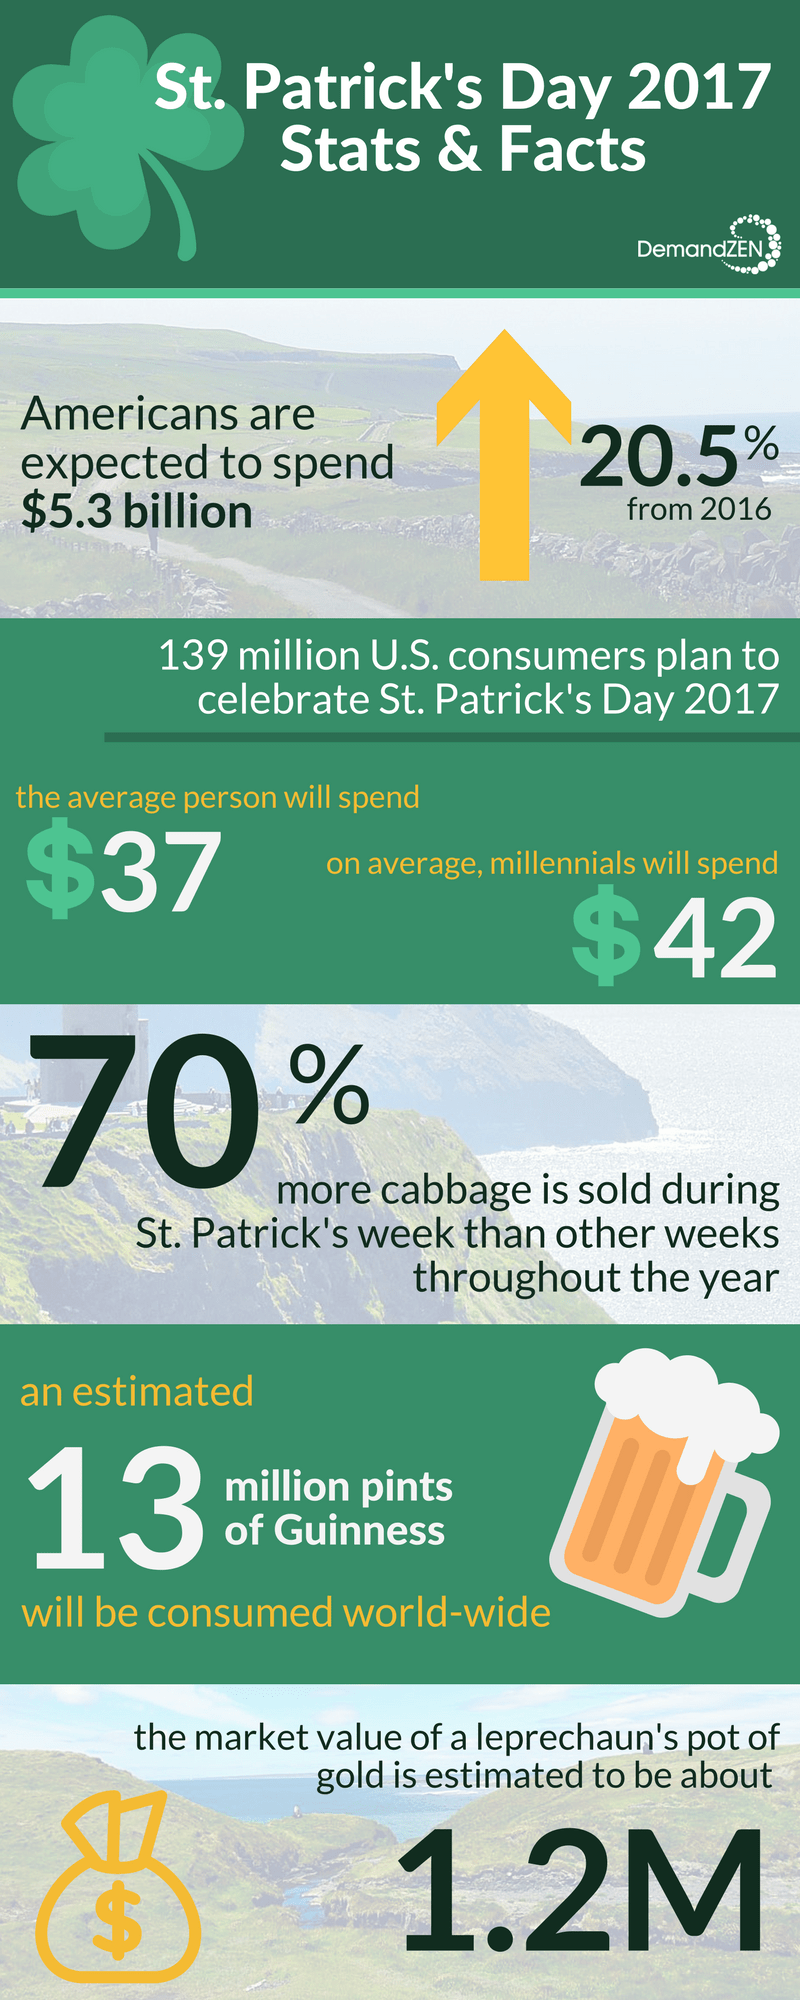 St. Patrick's Day 2017 Infographic